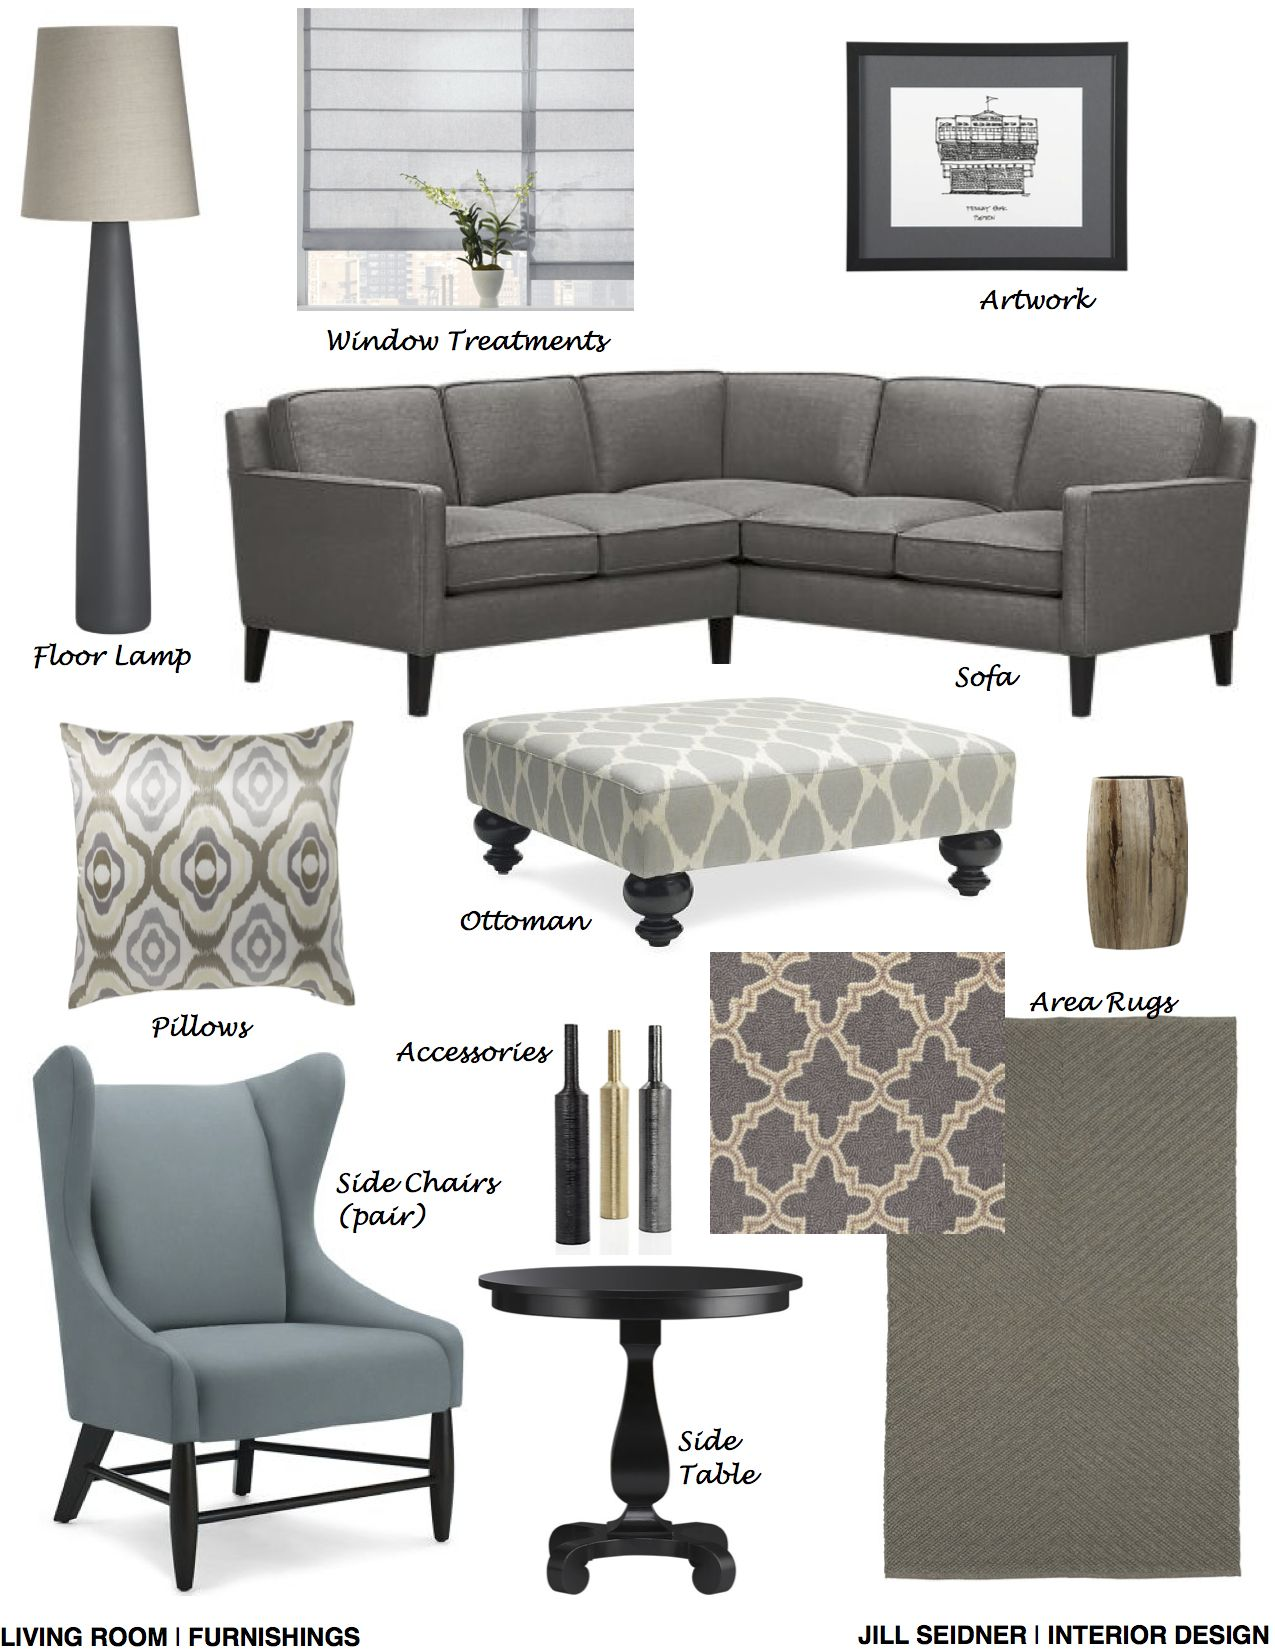 Cambridge, MA Online Design Project Living Room Furnishings Concept ...